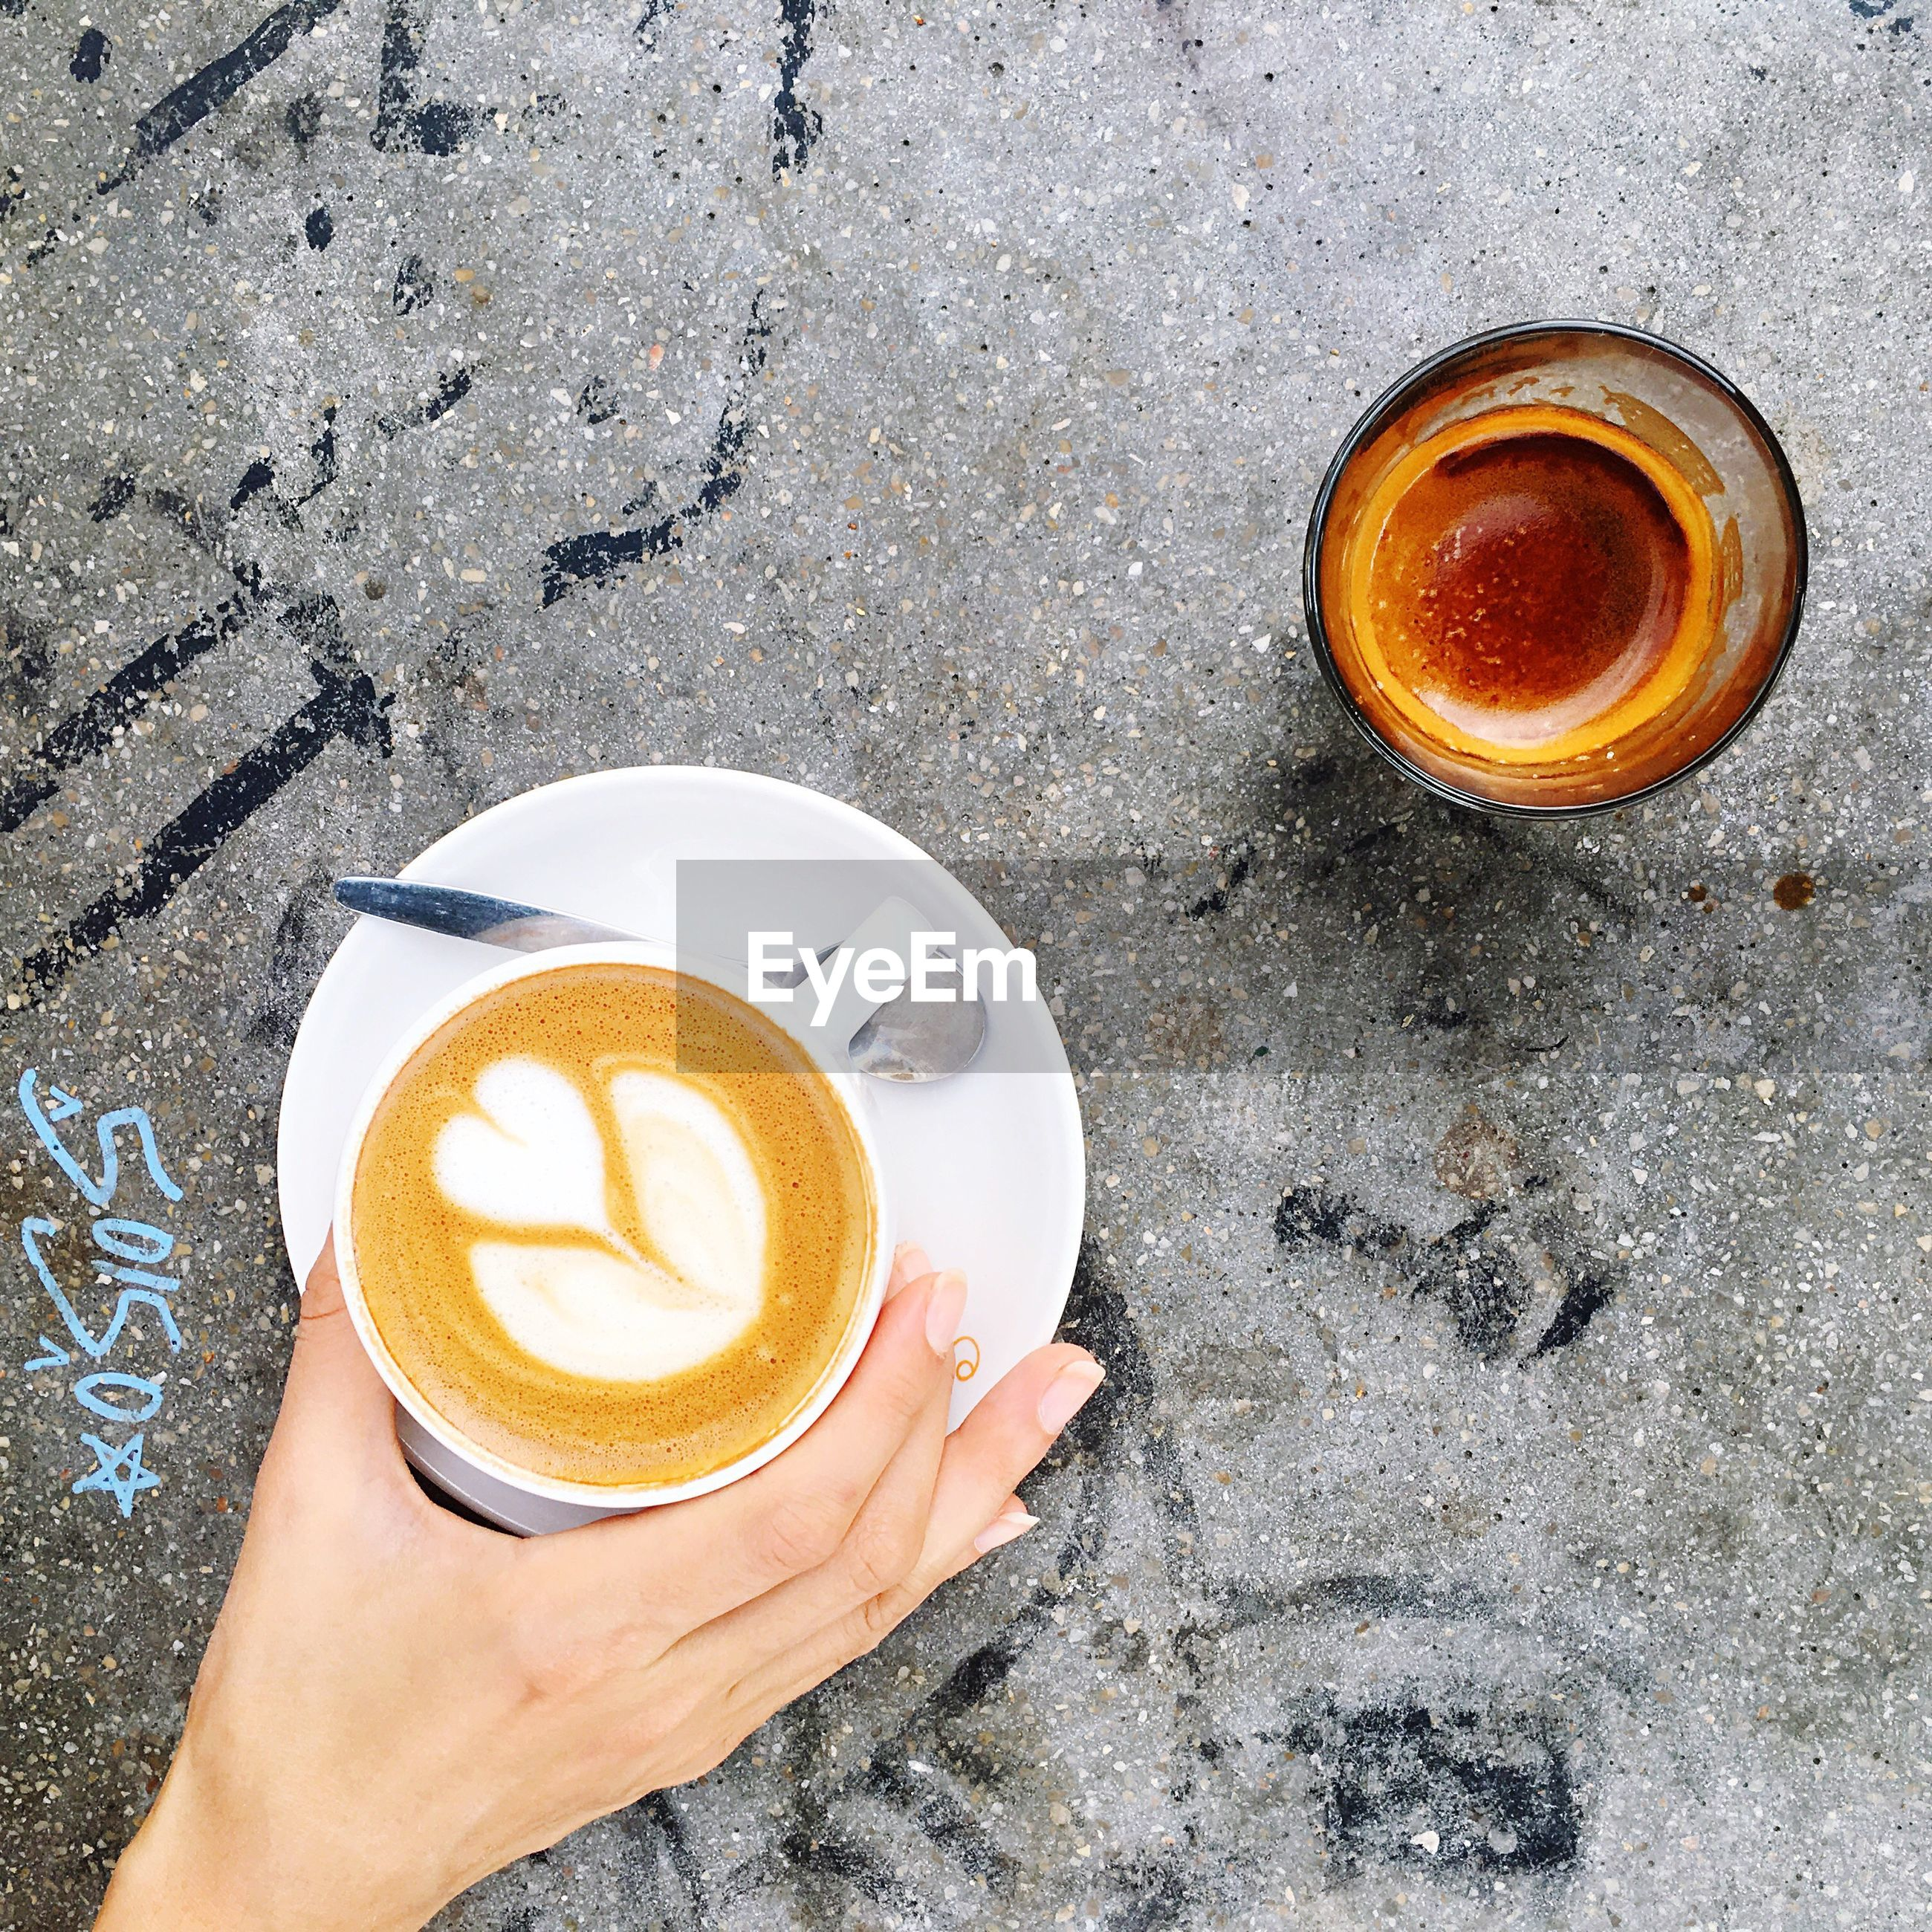 drink, food and drink, refreshment, human hand, coffee - drink, coffee cup, directly above, human body part, one person, frothy drink, high angle view, real people, holding, saucer, drinking glass, freshness, froth art, close-up, cappuccino, alcohol, outdoors, day, food, people